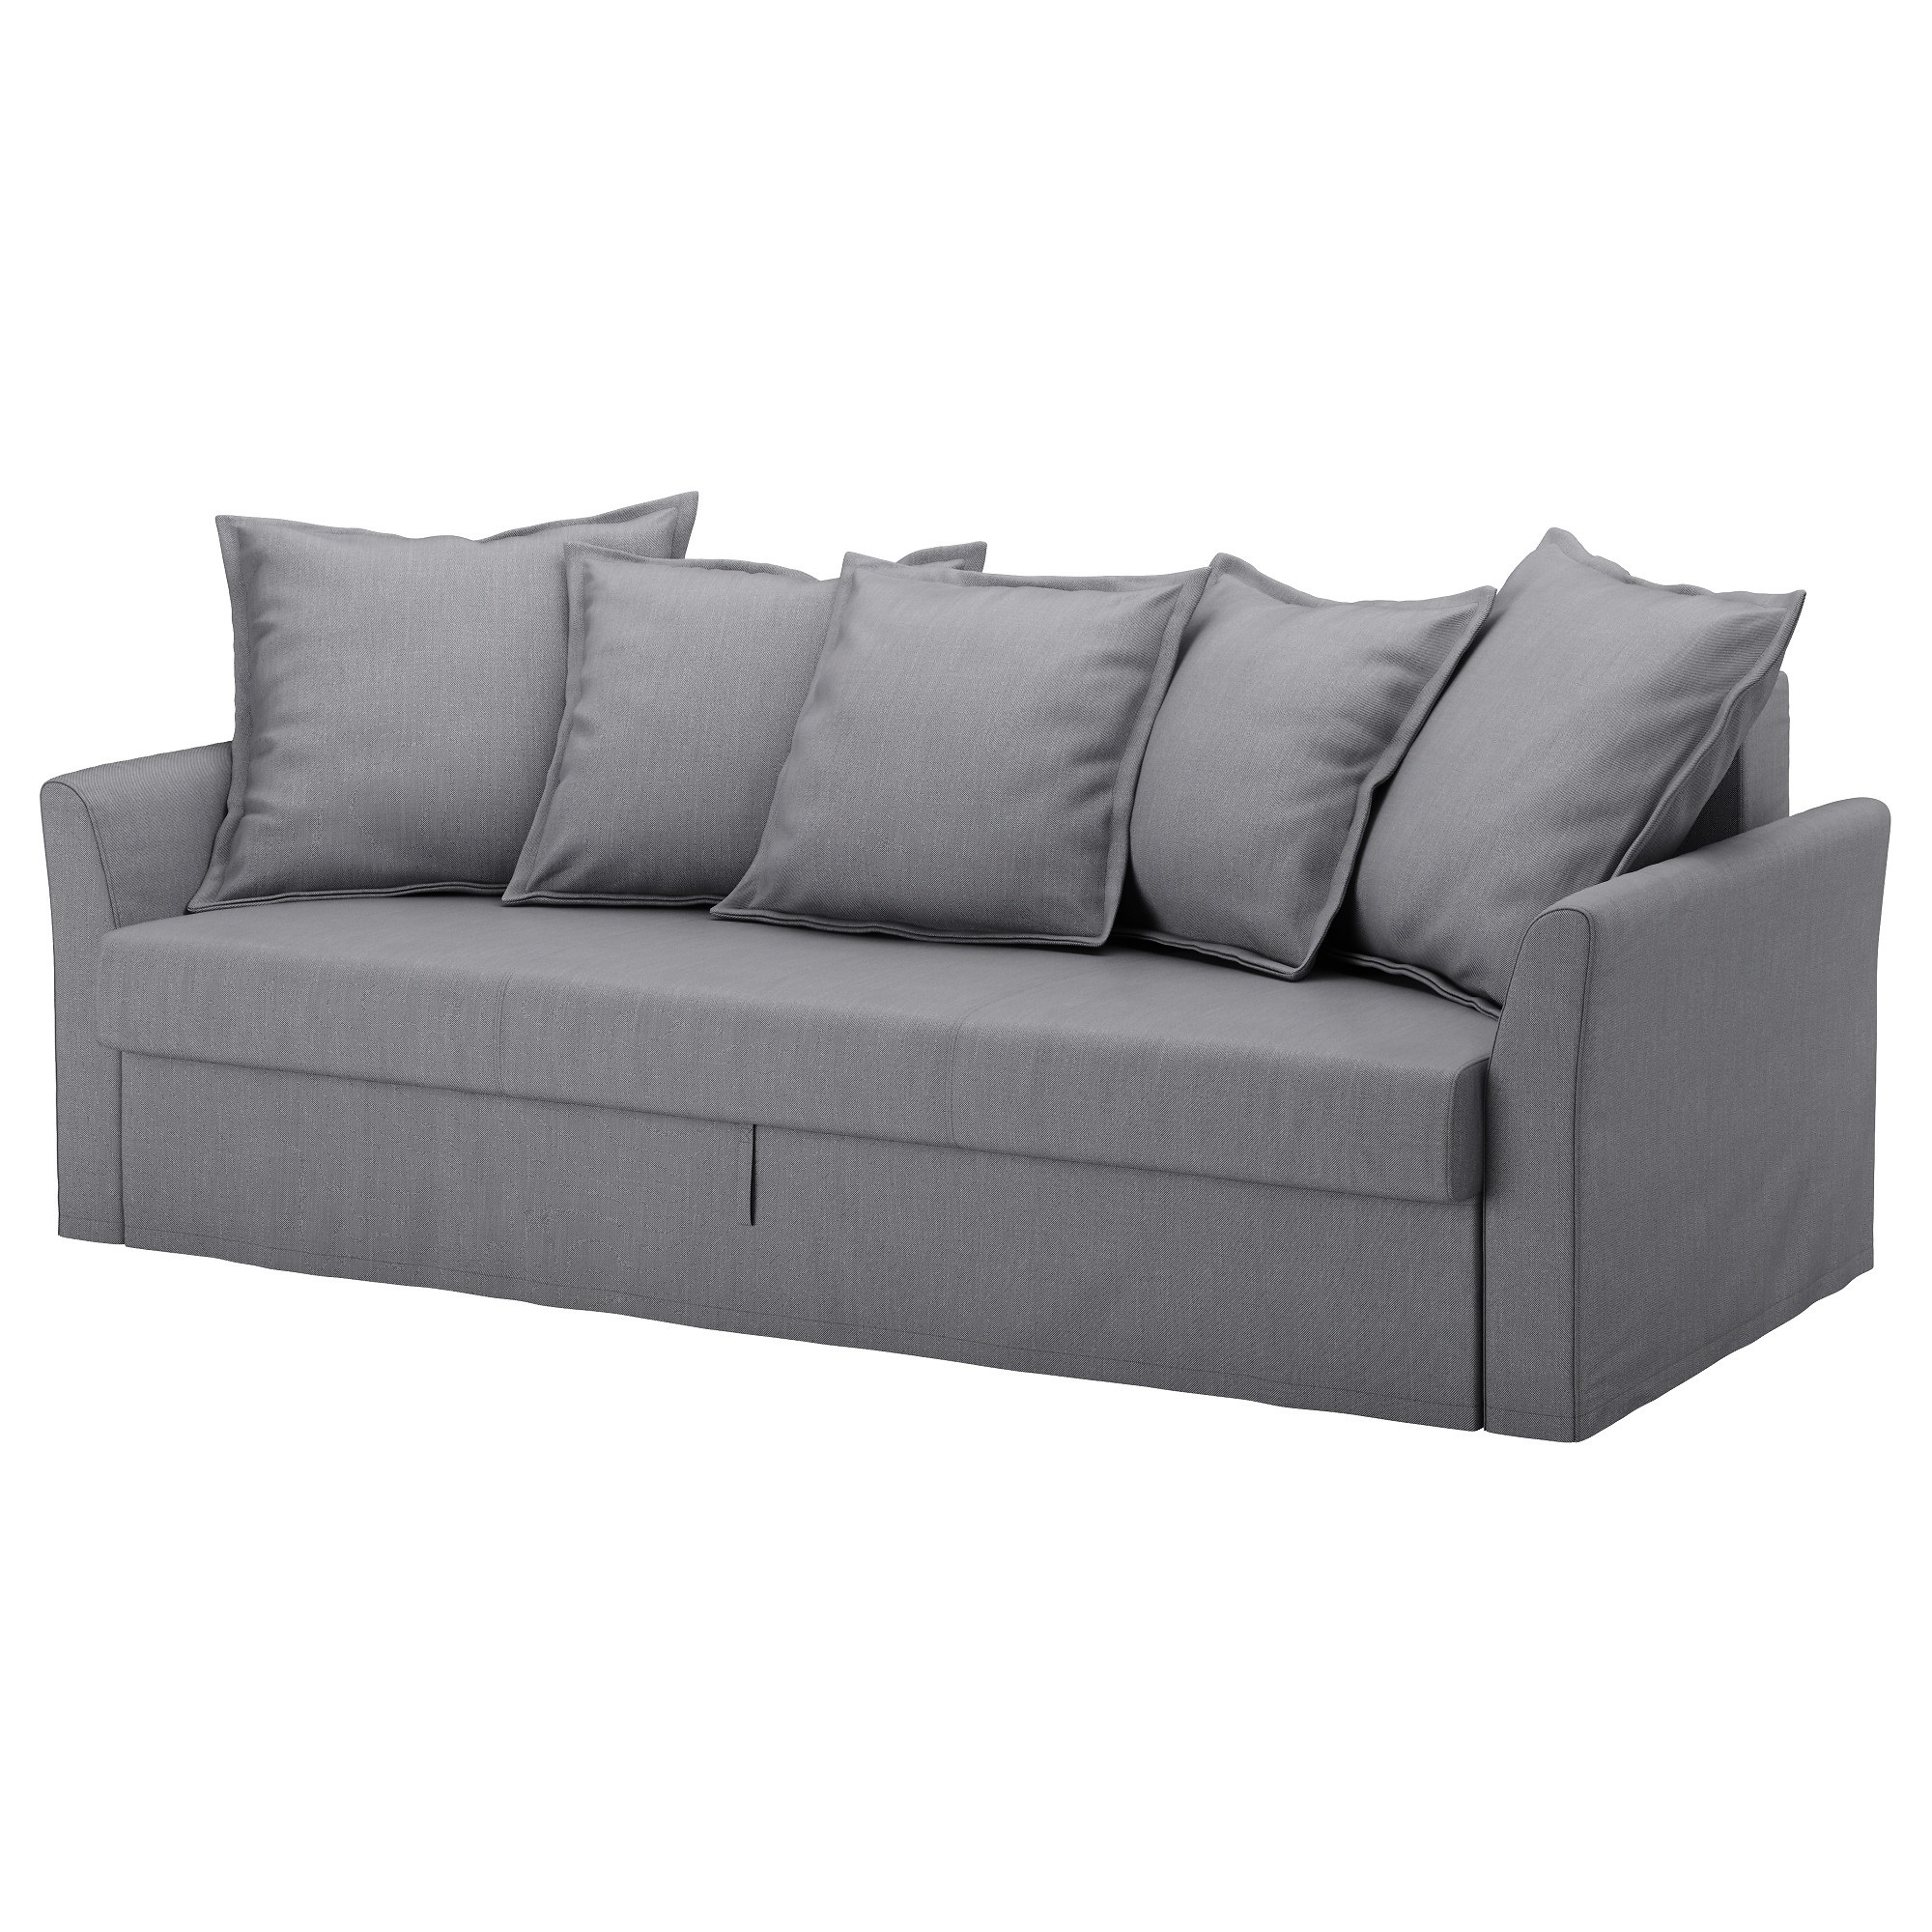 Friheten Ikea Avis Beau Collection Holmsund Cover for sofa Bed nordvalla Medium Gray Idées Uniques